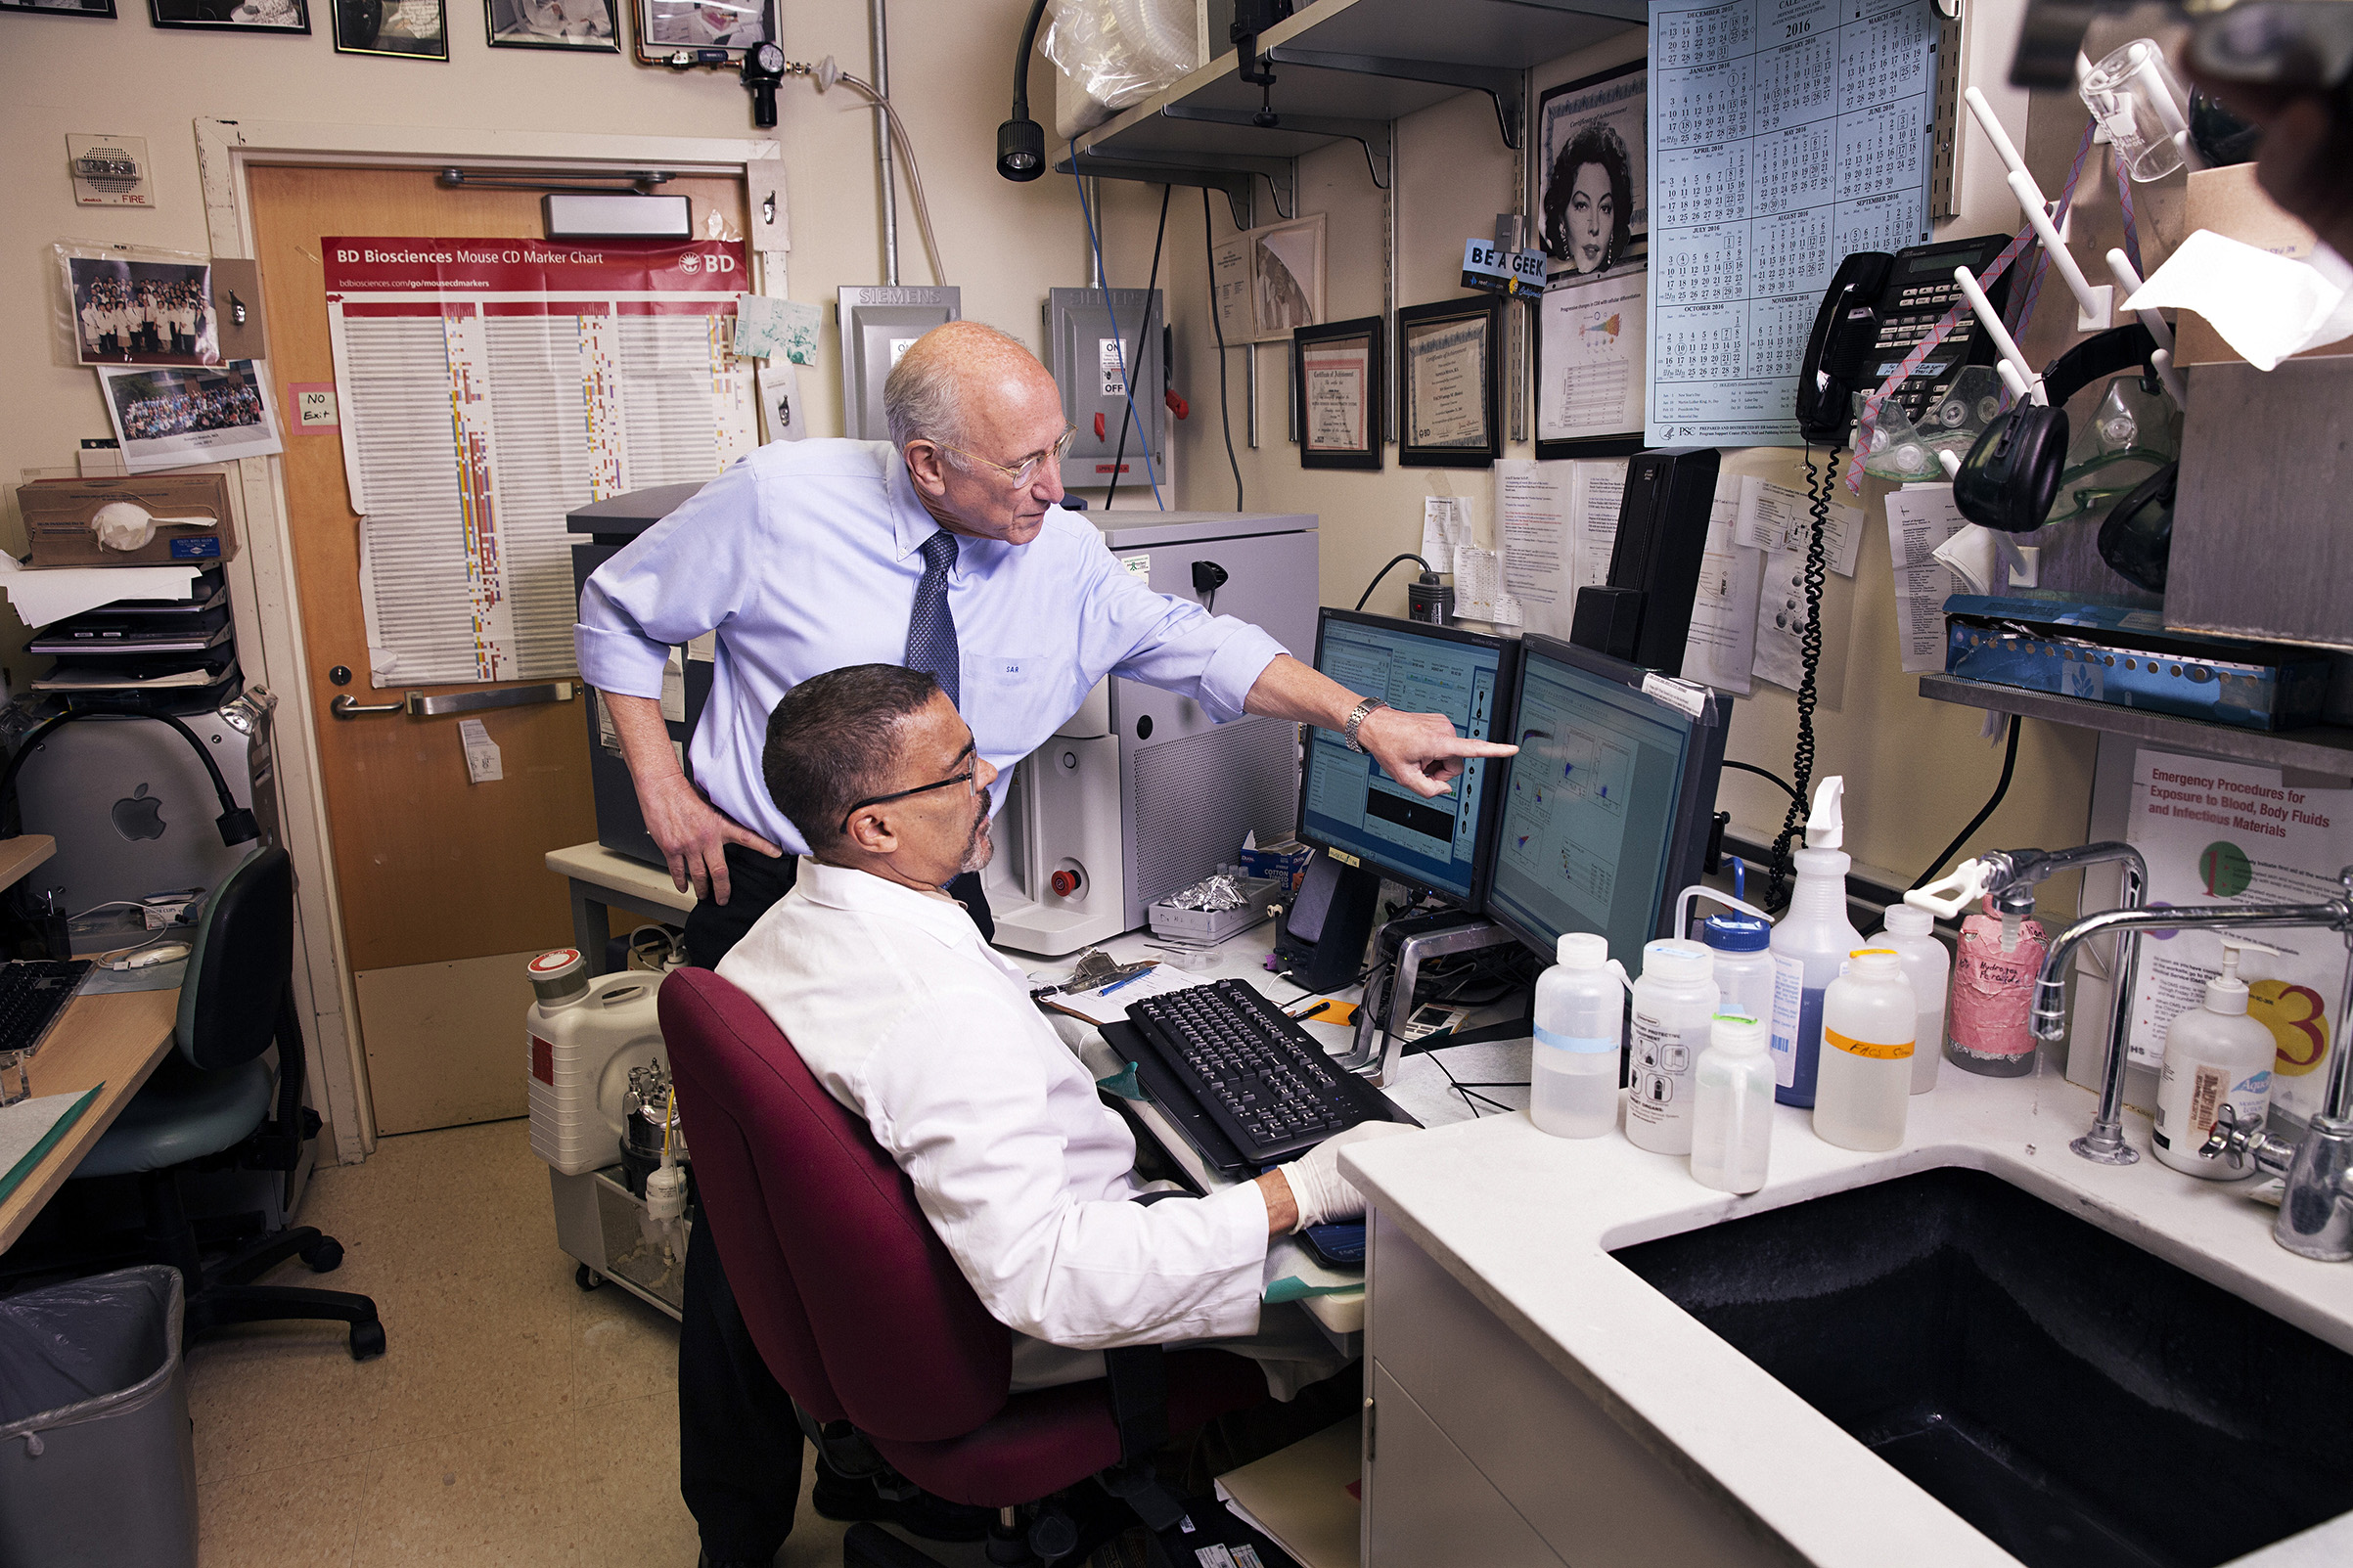 Dr. Steven Rosenberg, one of the pioneers of immunotherapy, in his labs at the National Cancer Institute